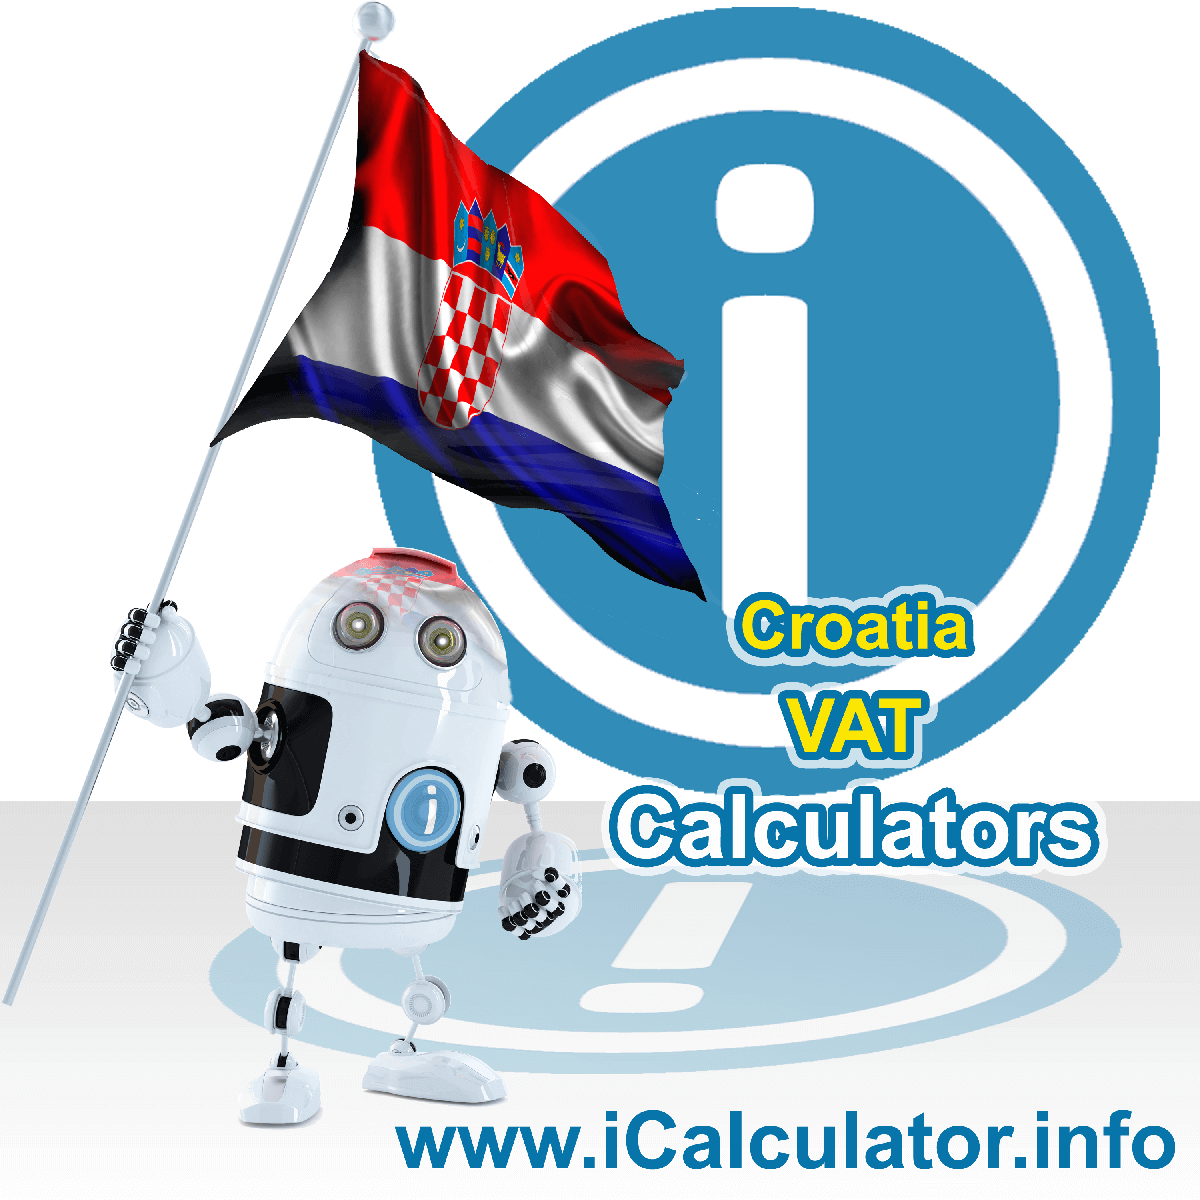 Croatia VAT Calculator. This image shows the Croatia flag and information relating to the VAT formula used for calculating Value Added Tax in Croatia using the Croatia VAT Calculator in 2020